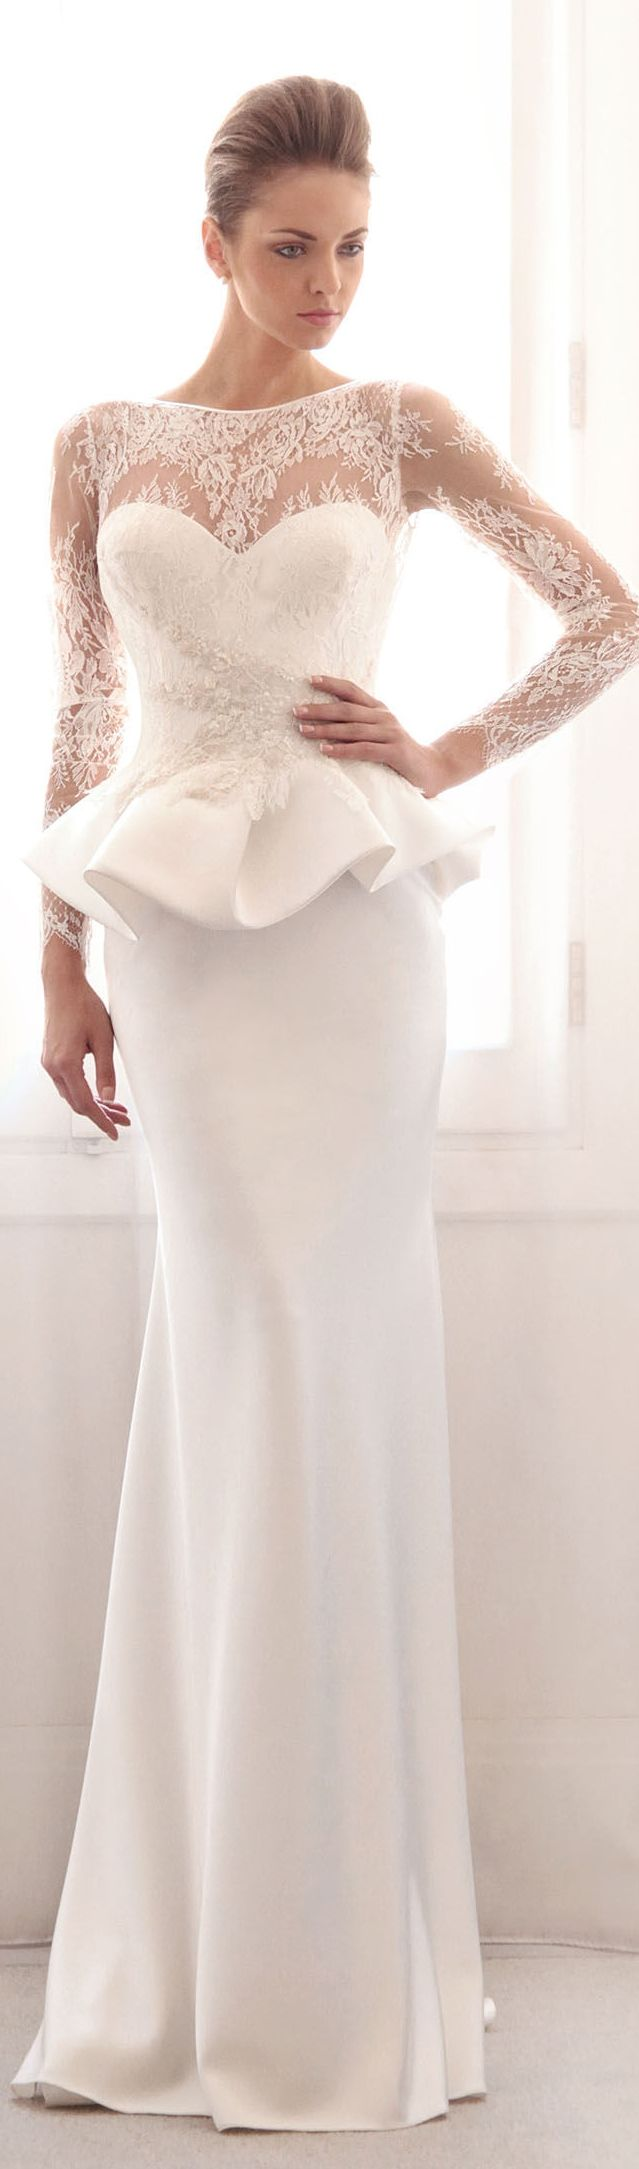 Gorgeous peplum wedding dress. Gemy Maalouf Bridal S/S 2014